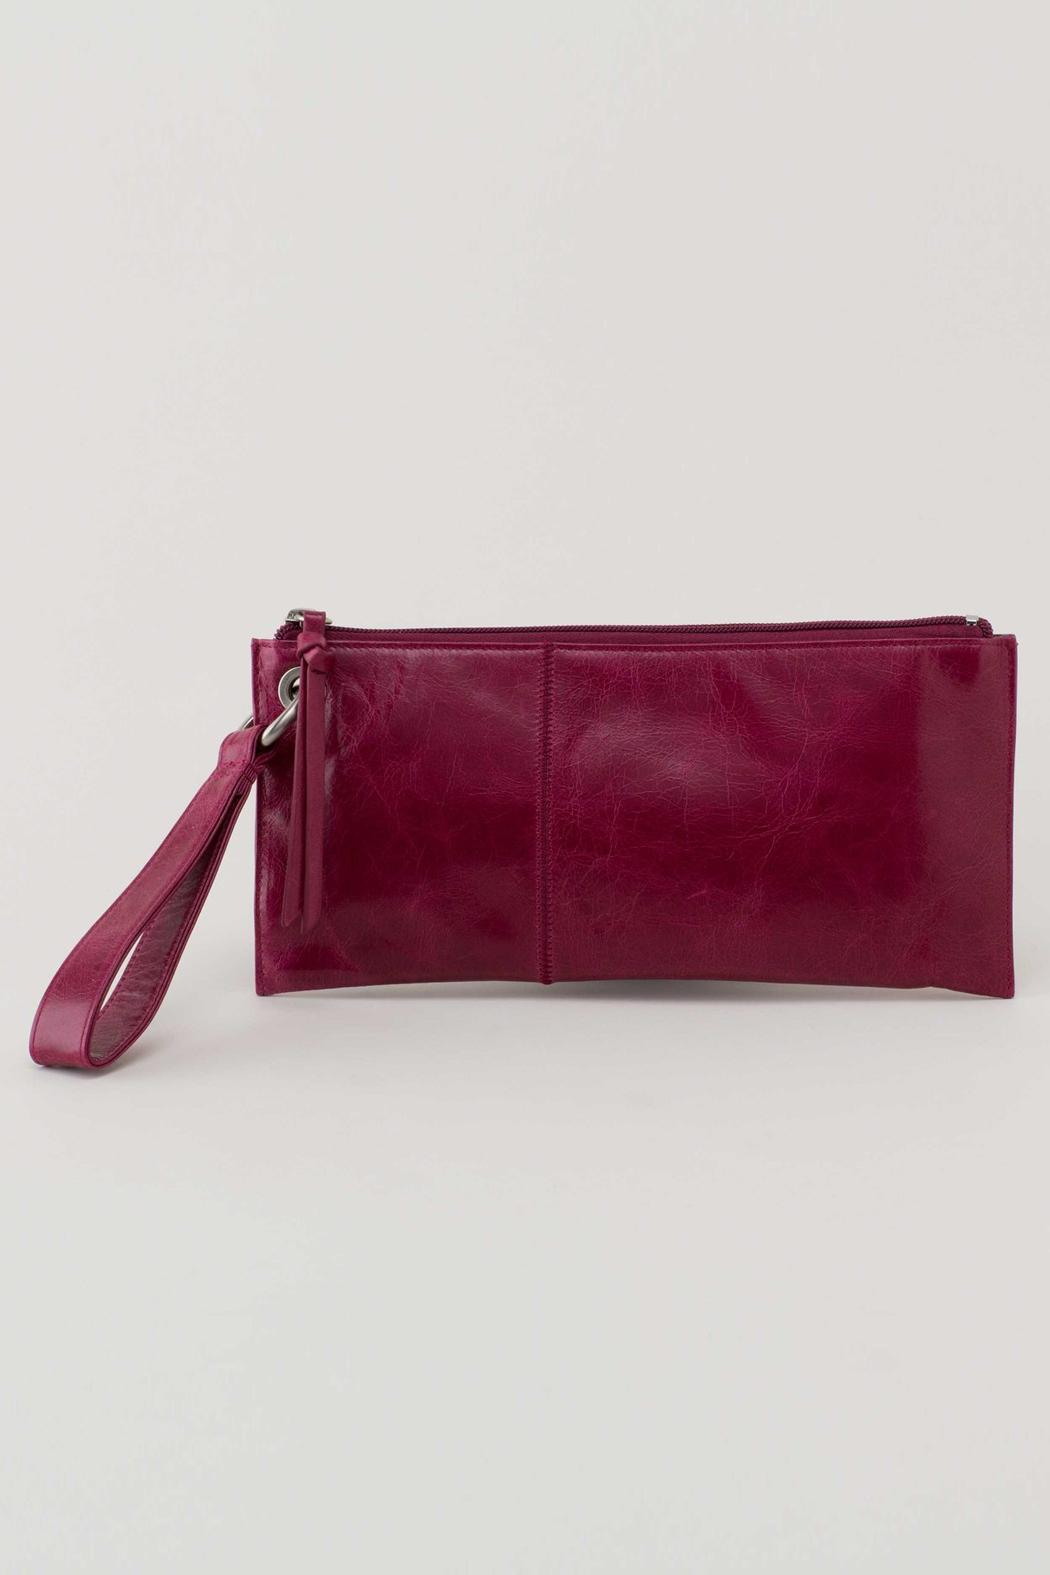 VIDA Leather Statement Clutch - I see by VIDA zWJN6M0K37